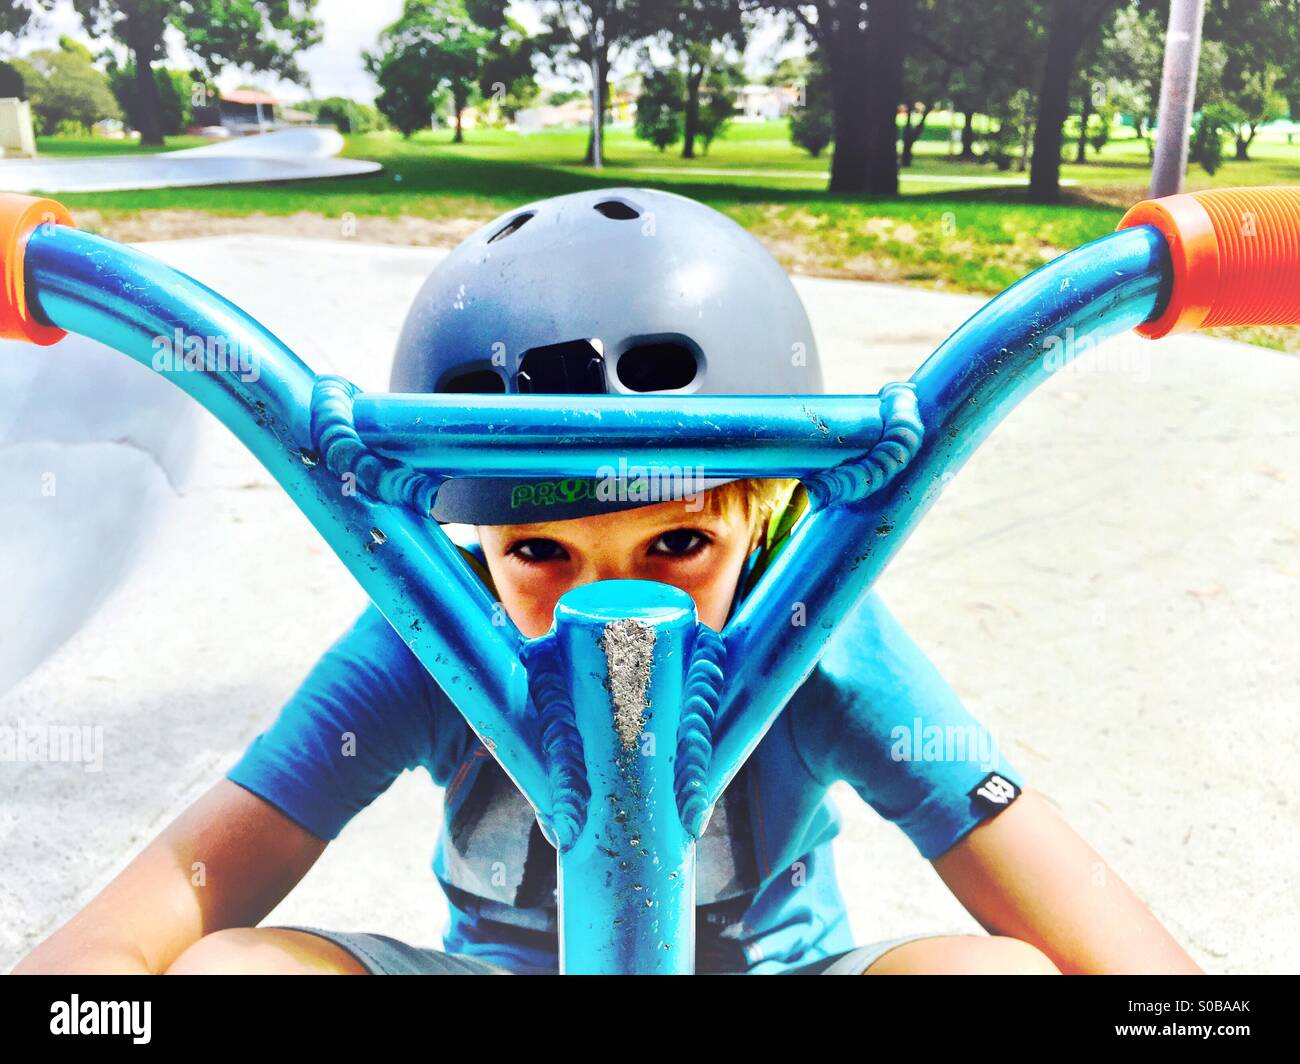 A boy looking through his scooter making an 'X' shape - Stock Image